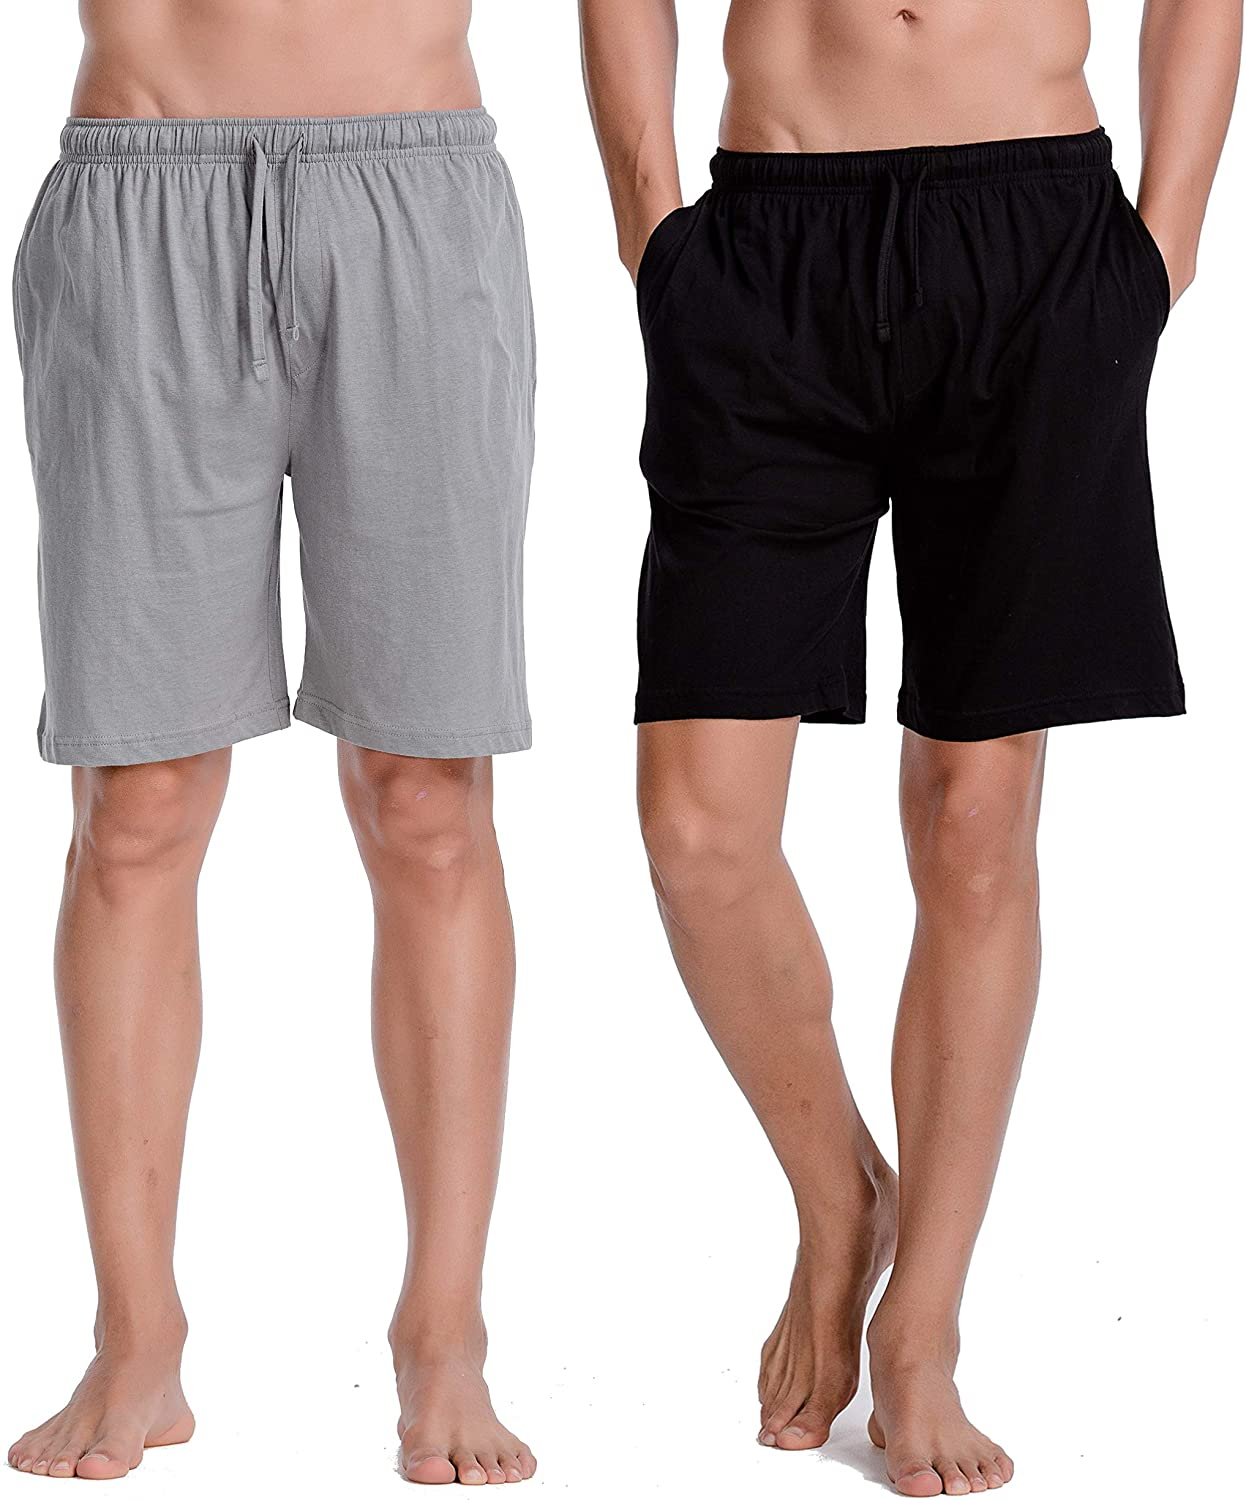 CYZ Mens Comfort Cotton Jersey Shorts with Pockets-BlackGreyMelange2PK-L